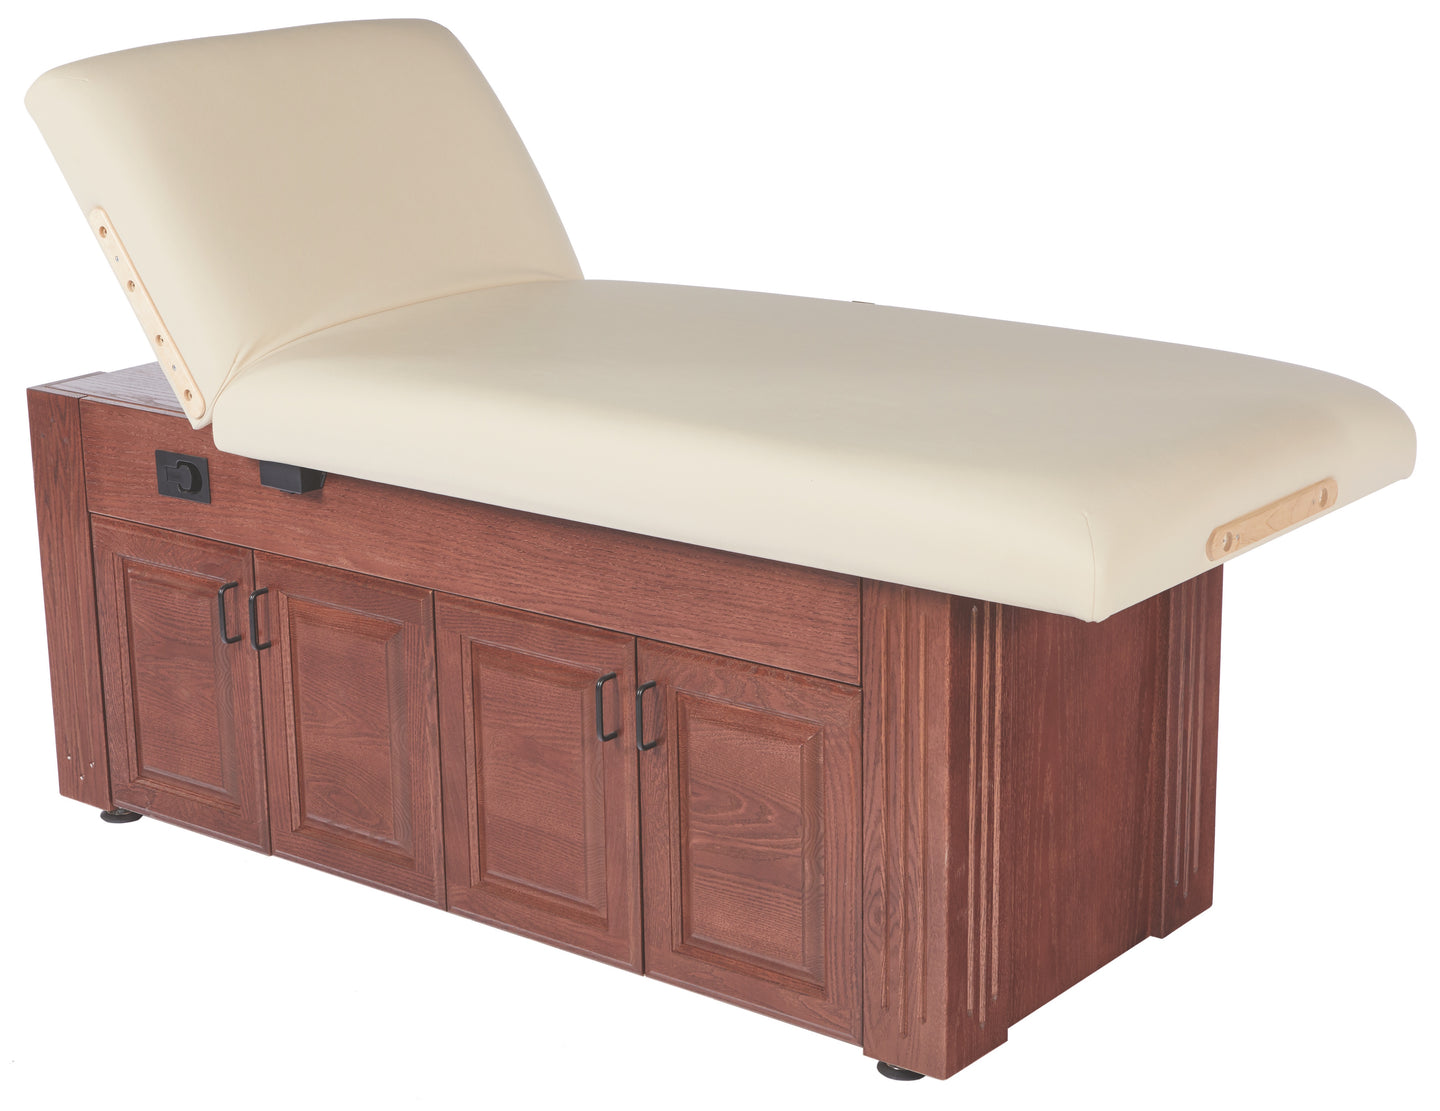 Signature Series by Custom Craftworks - M100 Lift Back Electric Lift Massage Table - Superb Massage Tables